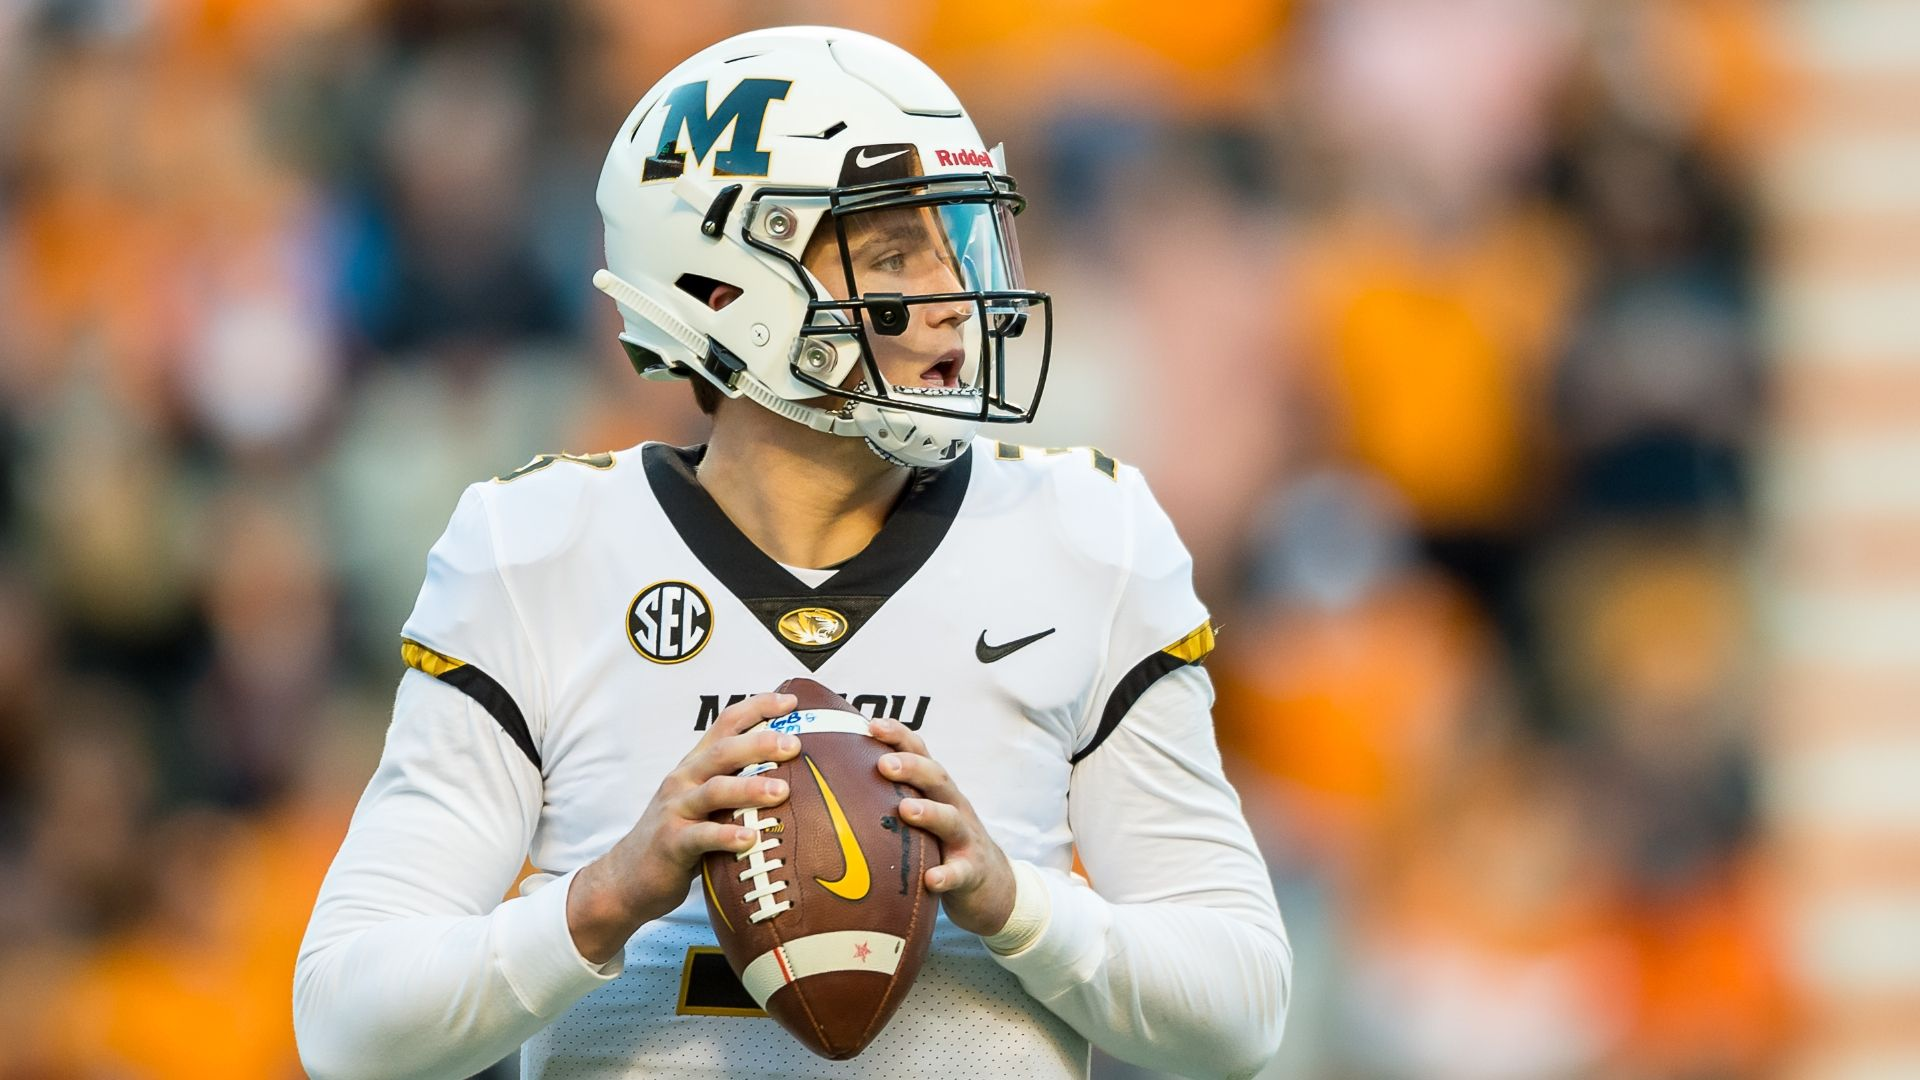 NFL draft profile: Drew Lock